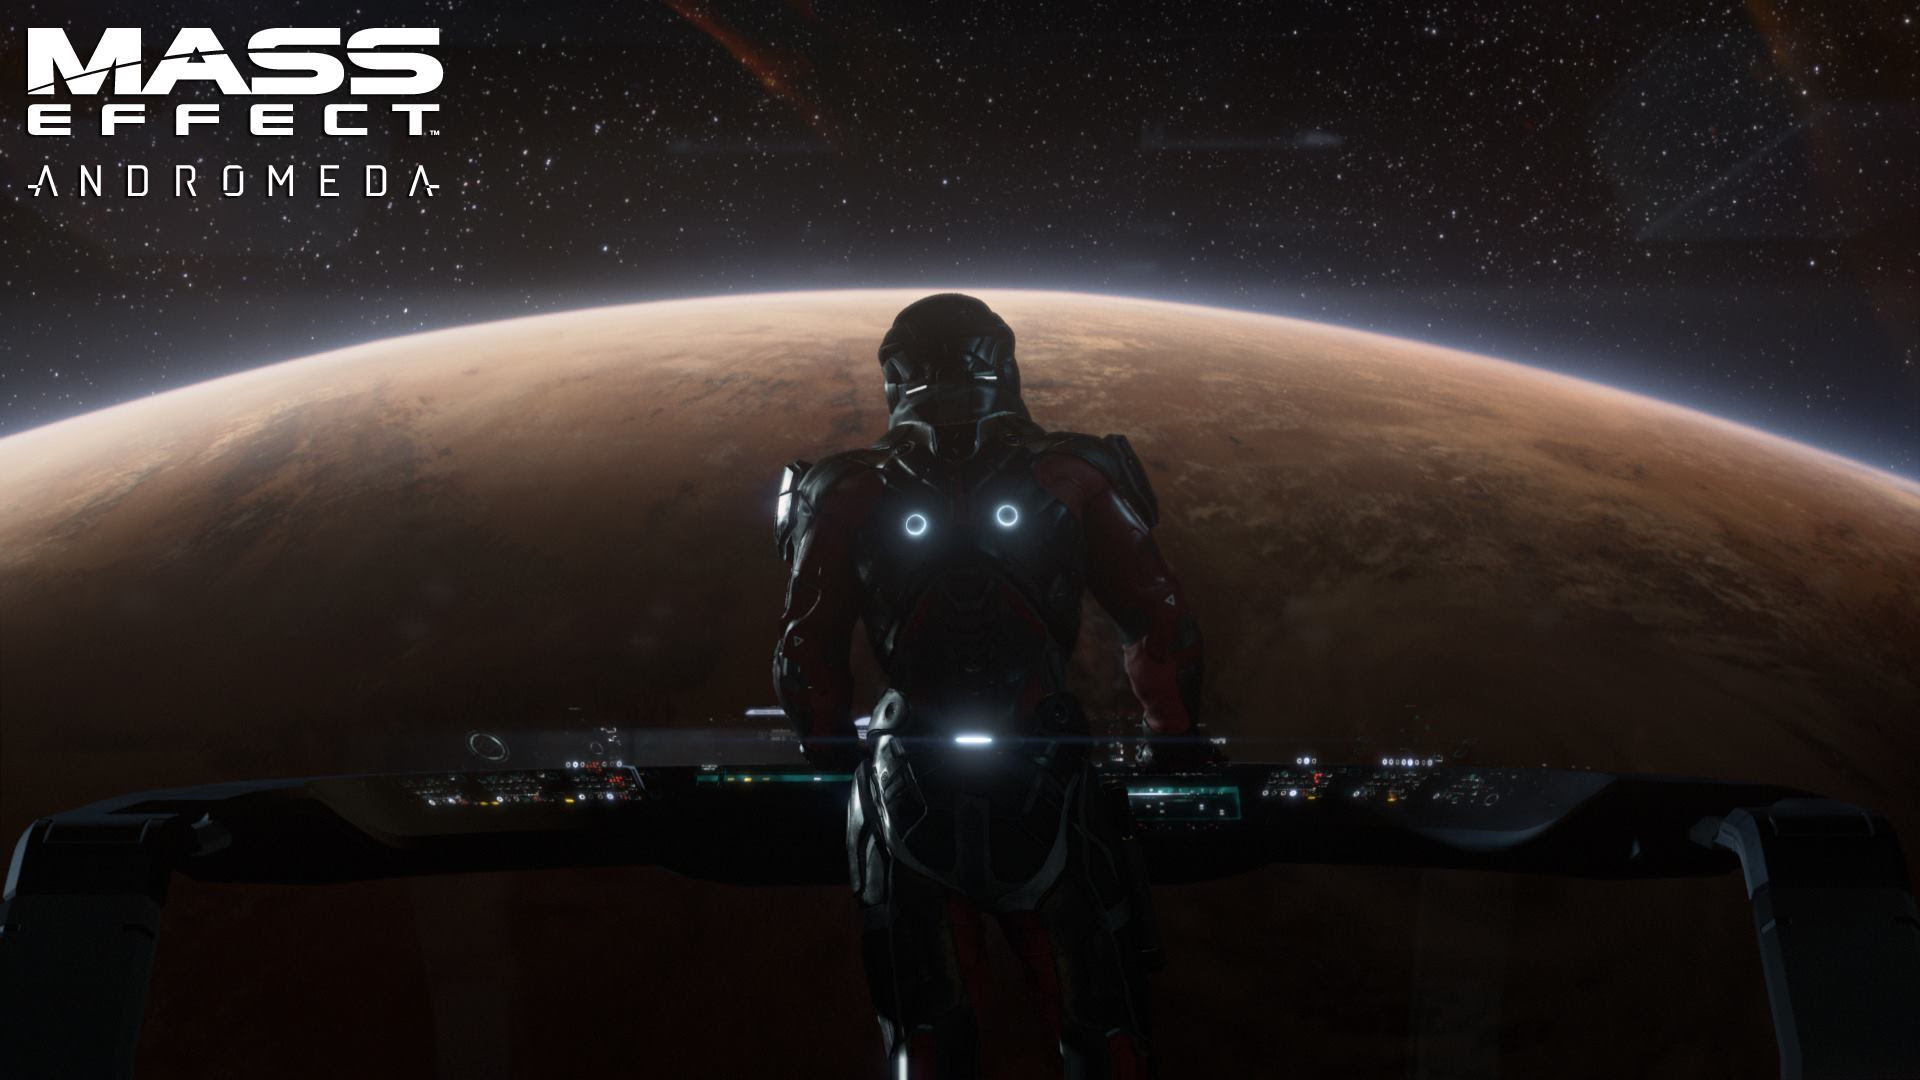 http://assets.vg247.com/current//2015/06/mass_effect_andromeda_e3_trailer_7.jpg